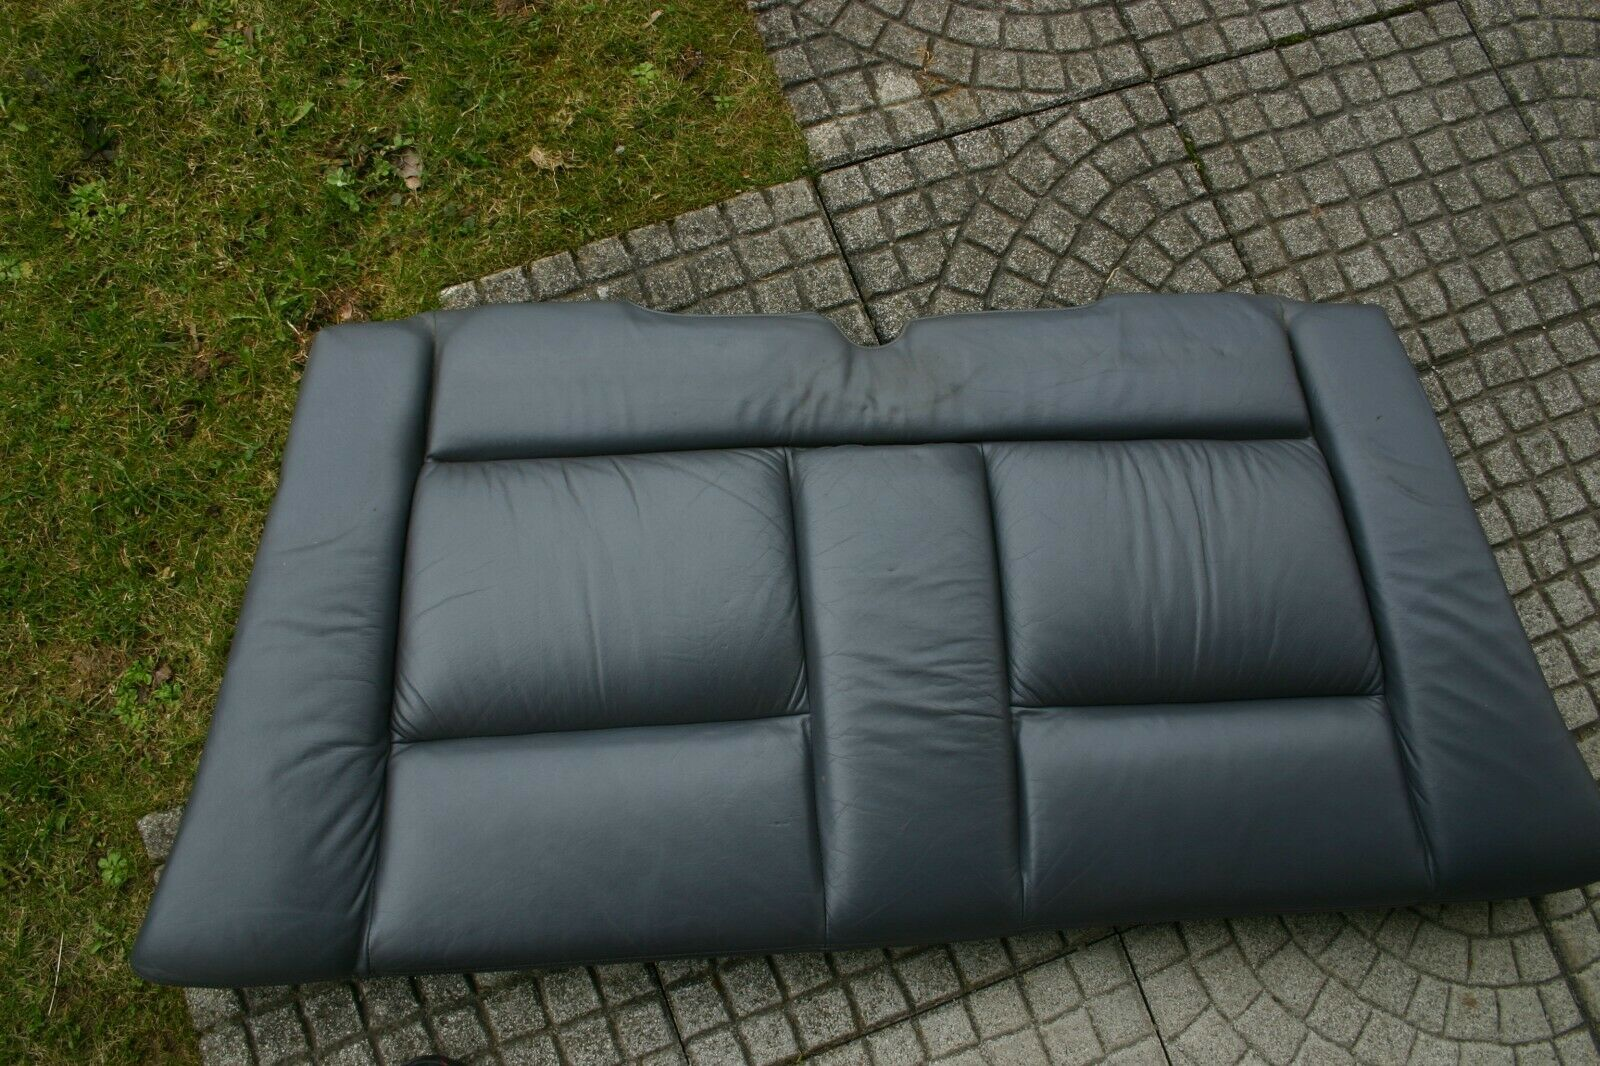 Full Size of Lederpflege Sofa Im Cabrio Teil I Boxspring Copperfield Grau Weiß Le Corbusier Alcantara Günstig Rotes Hay Mags Chesterfield Leder Husse W Schillig Sofa Lederpflege Sofa